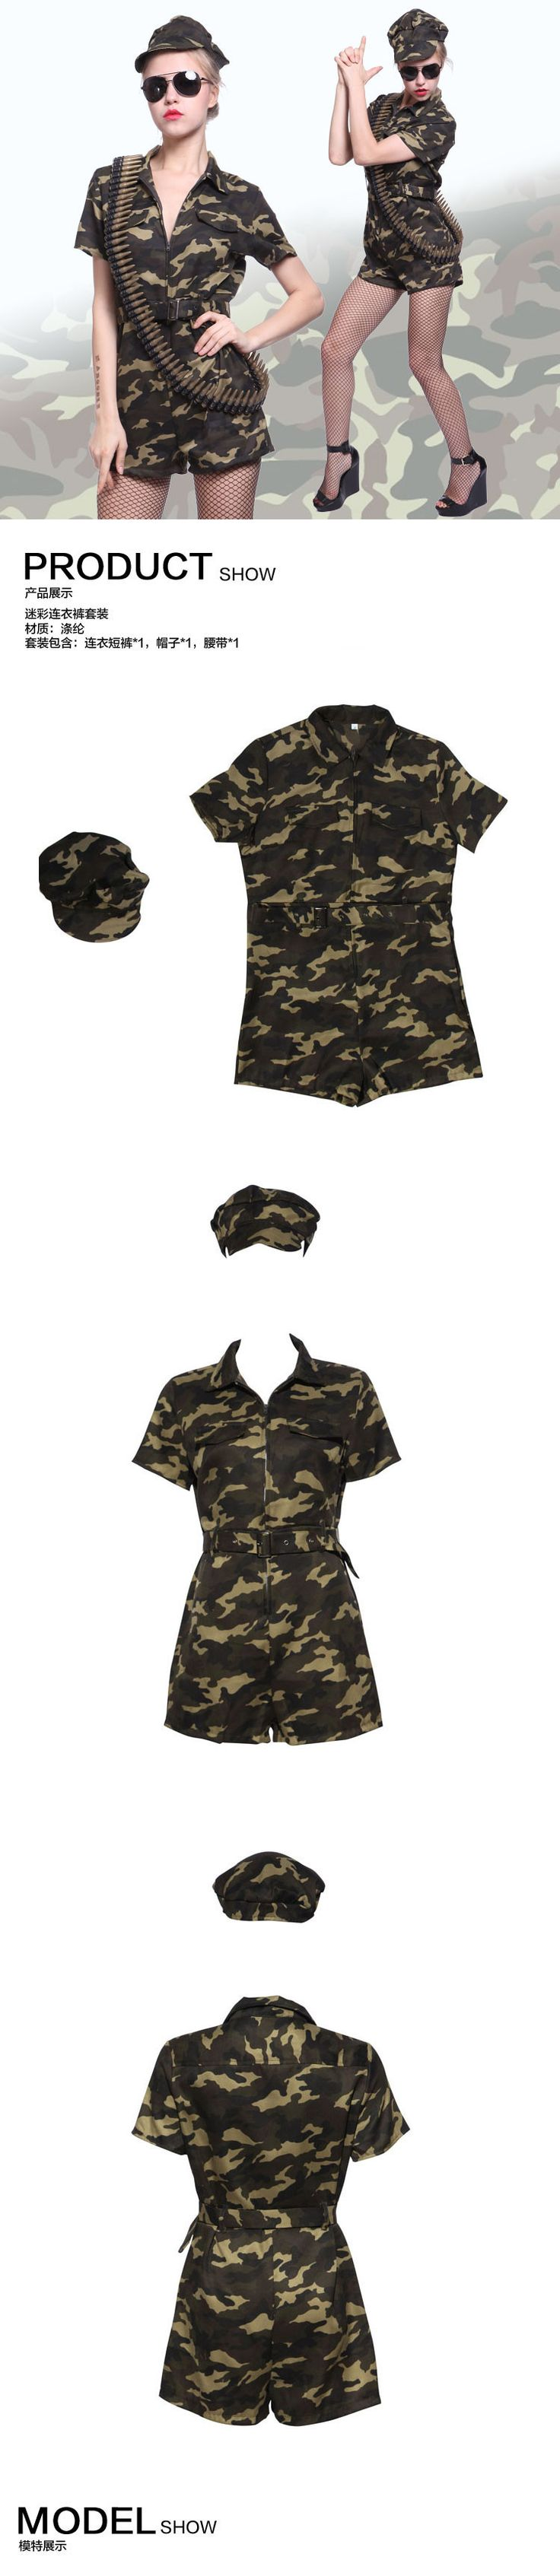 Adult Size S M Camo Army Girl Soldier Fancy Dress Costume Sexy Ladies Womens-in Clothing from Novelty & Special Use on Aliexpress.com | Alibaba Group